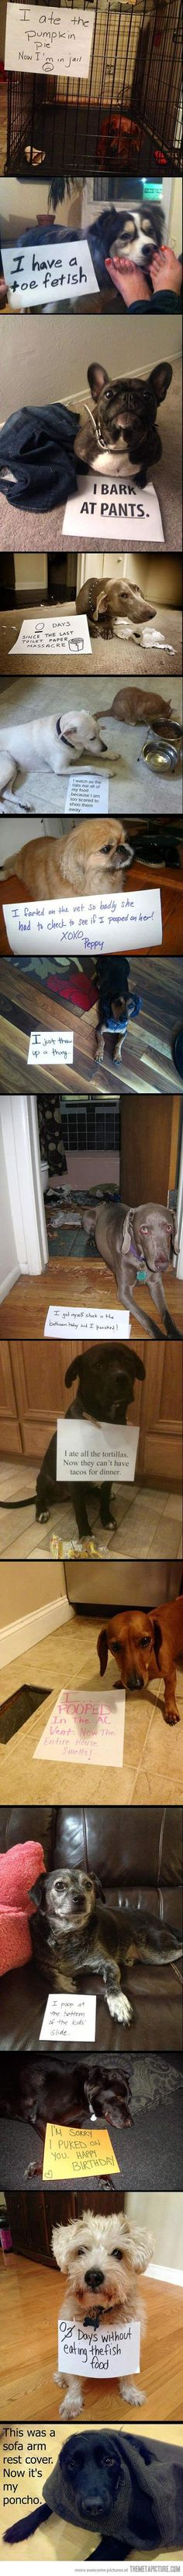 The joys of dog ownership... Best of Dog Shaming.